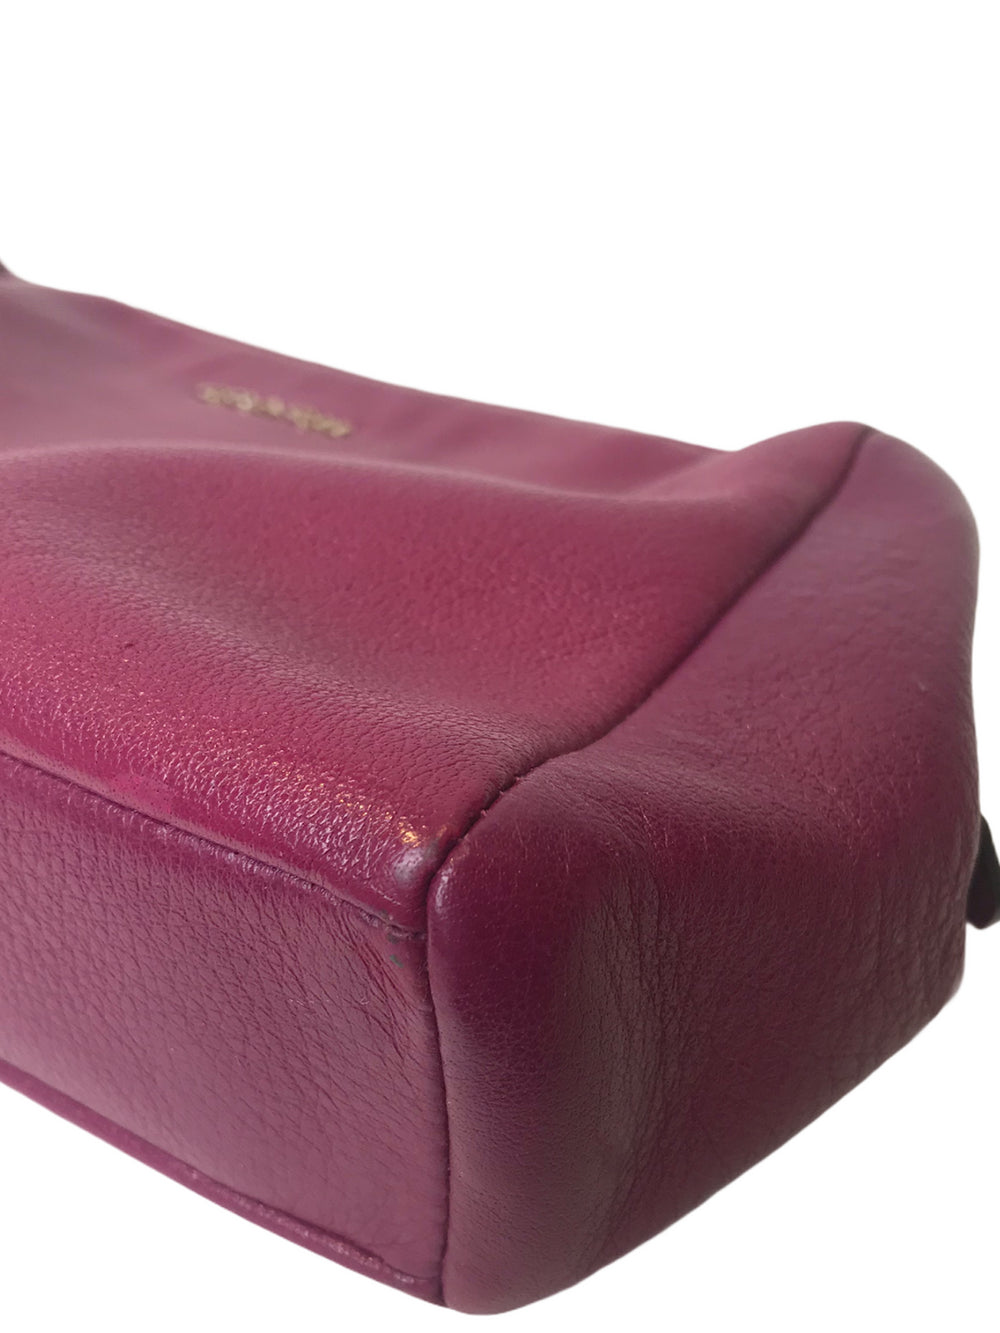 Coach Fushia Makeup Bag - As Seen on Instagram